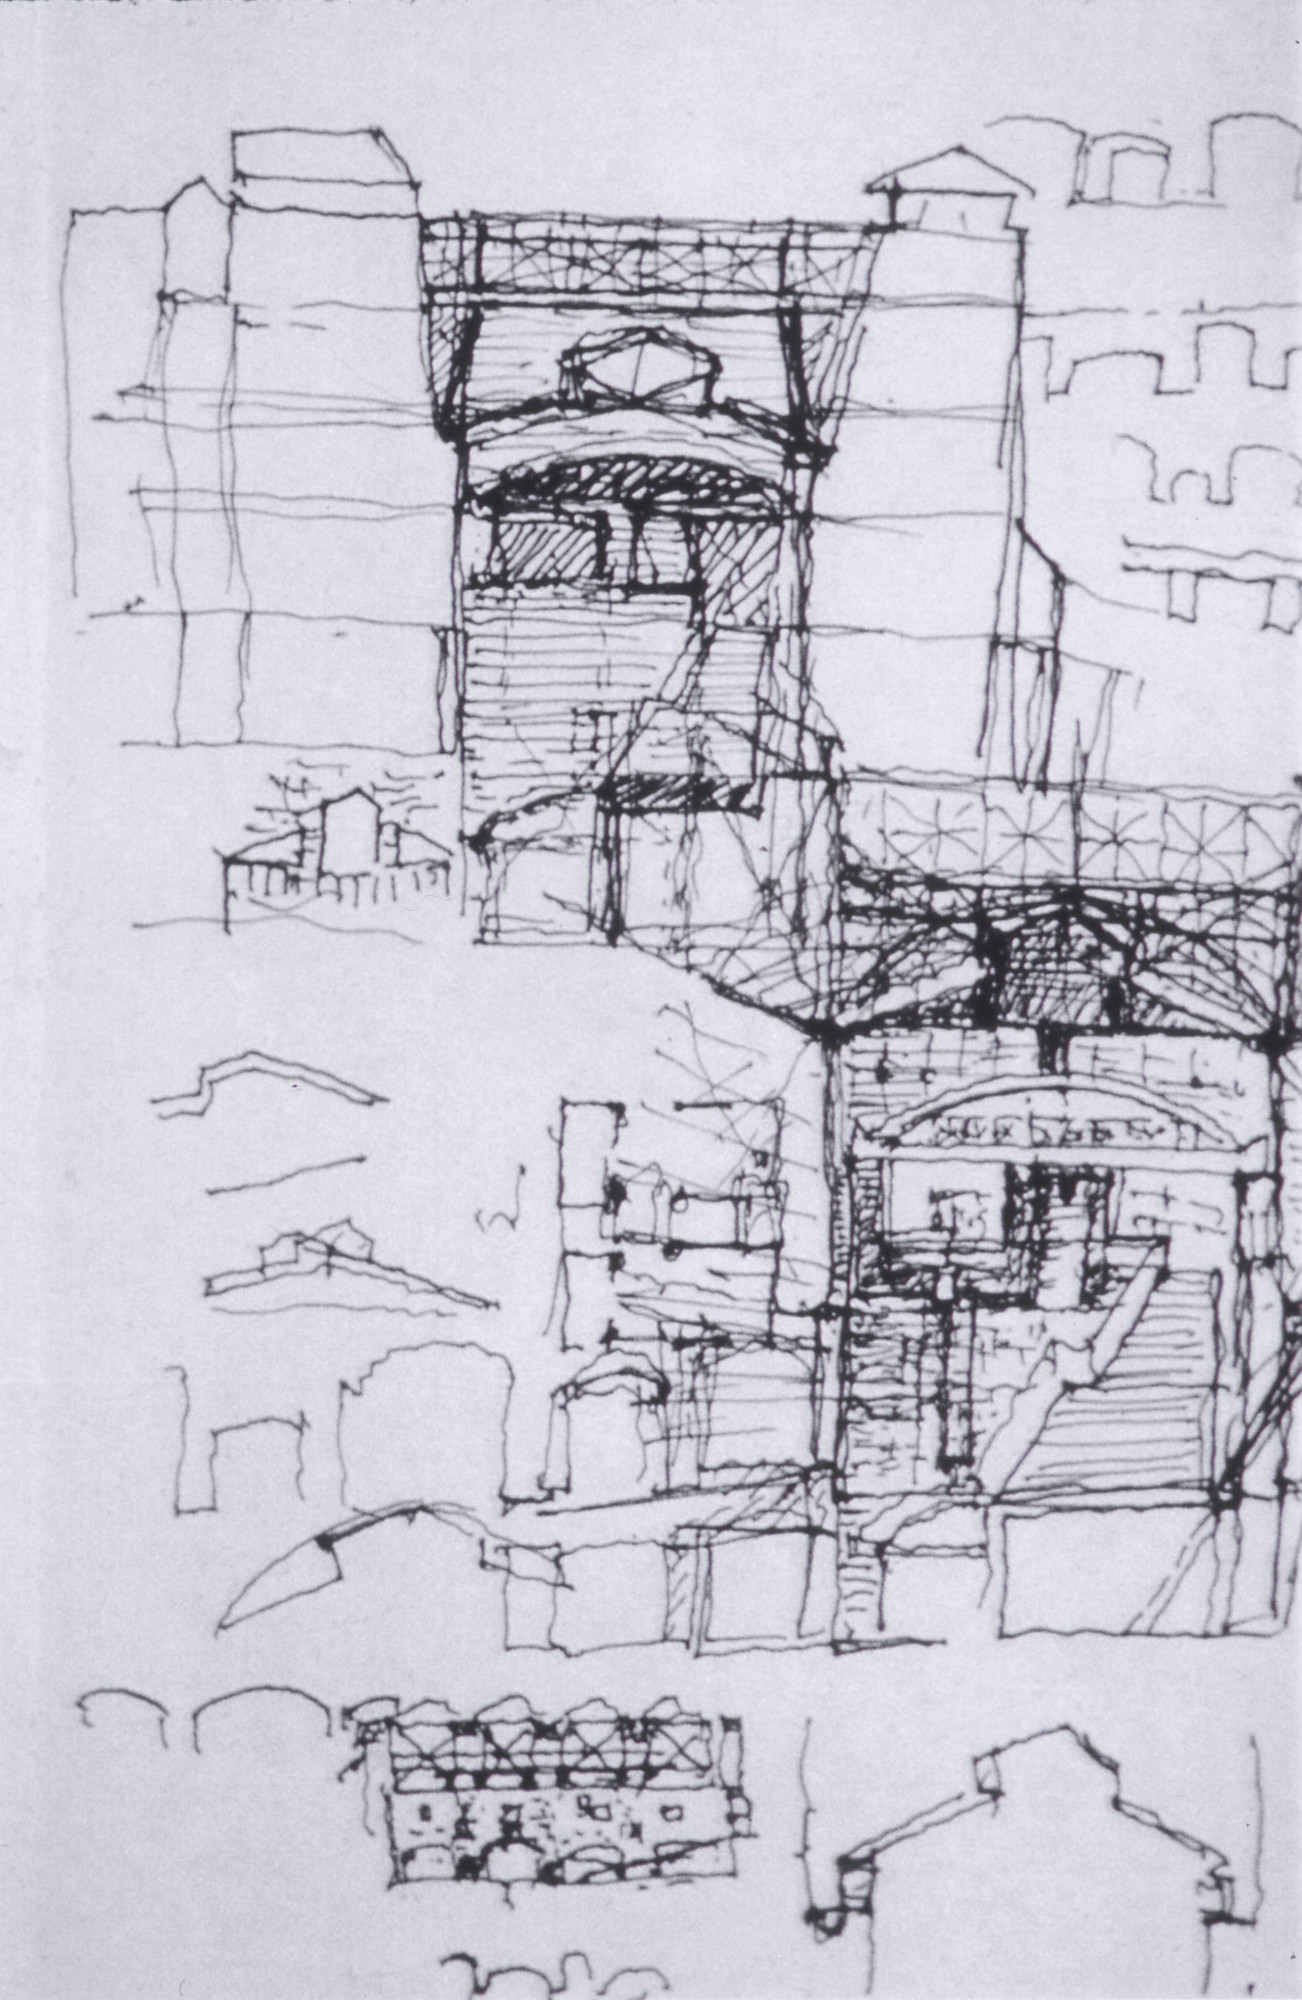 Sketch for the U.S. Holocaust Memorial Museum building by the museum's architect, James Ingo Freed.